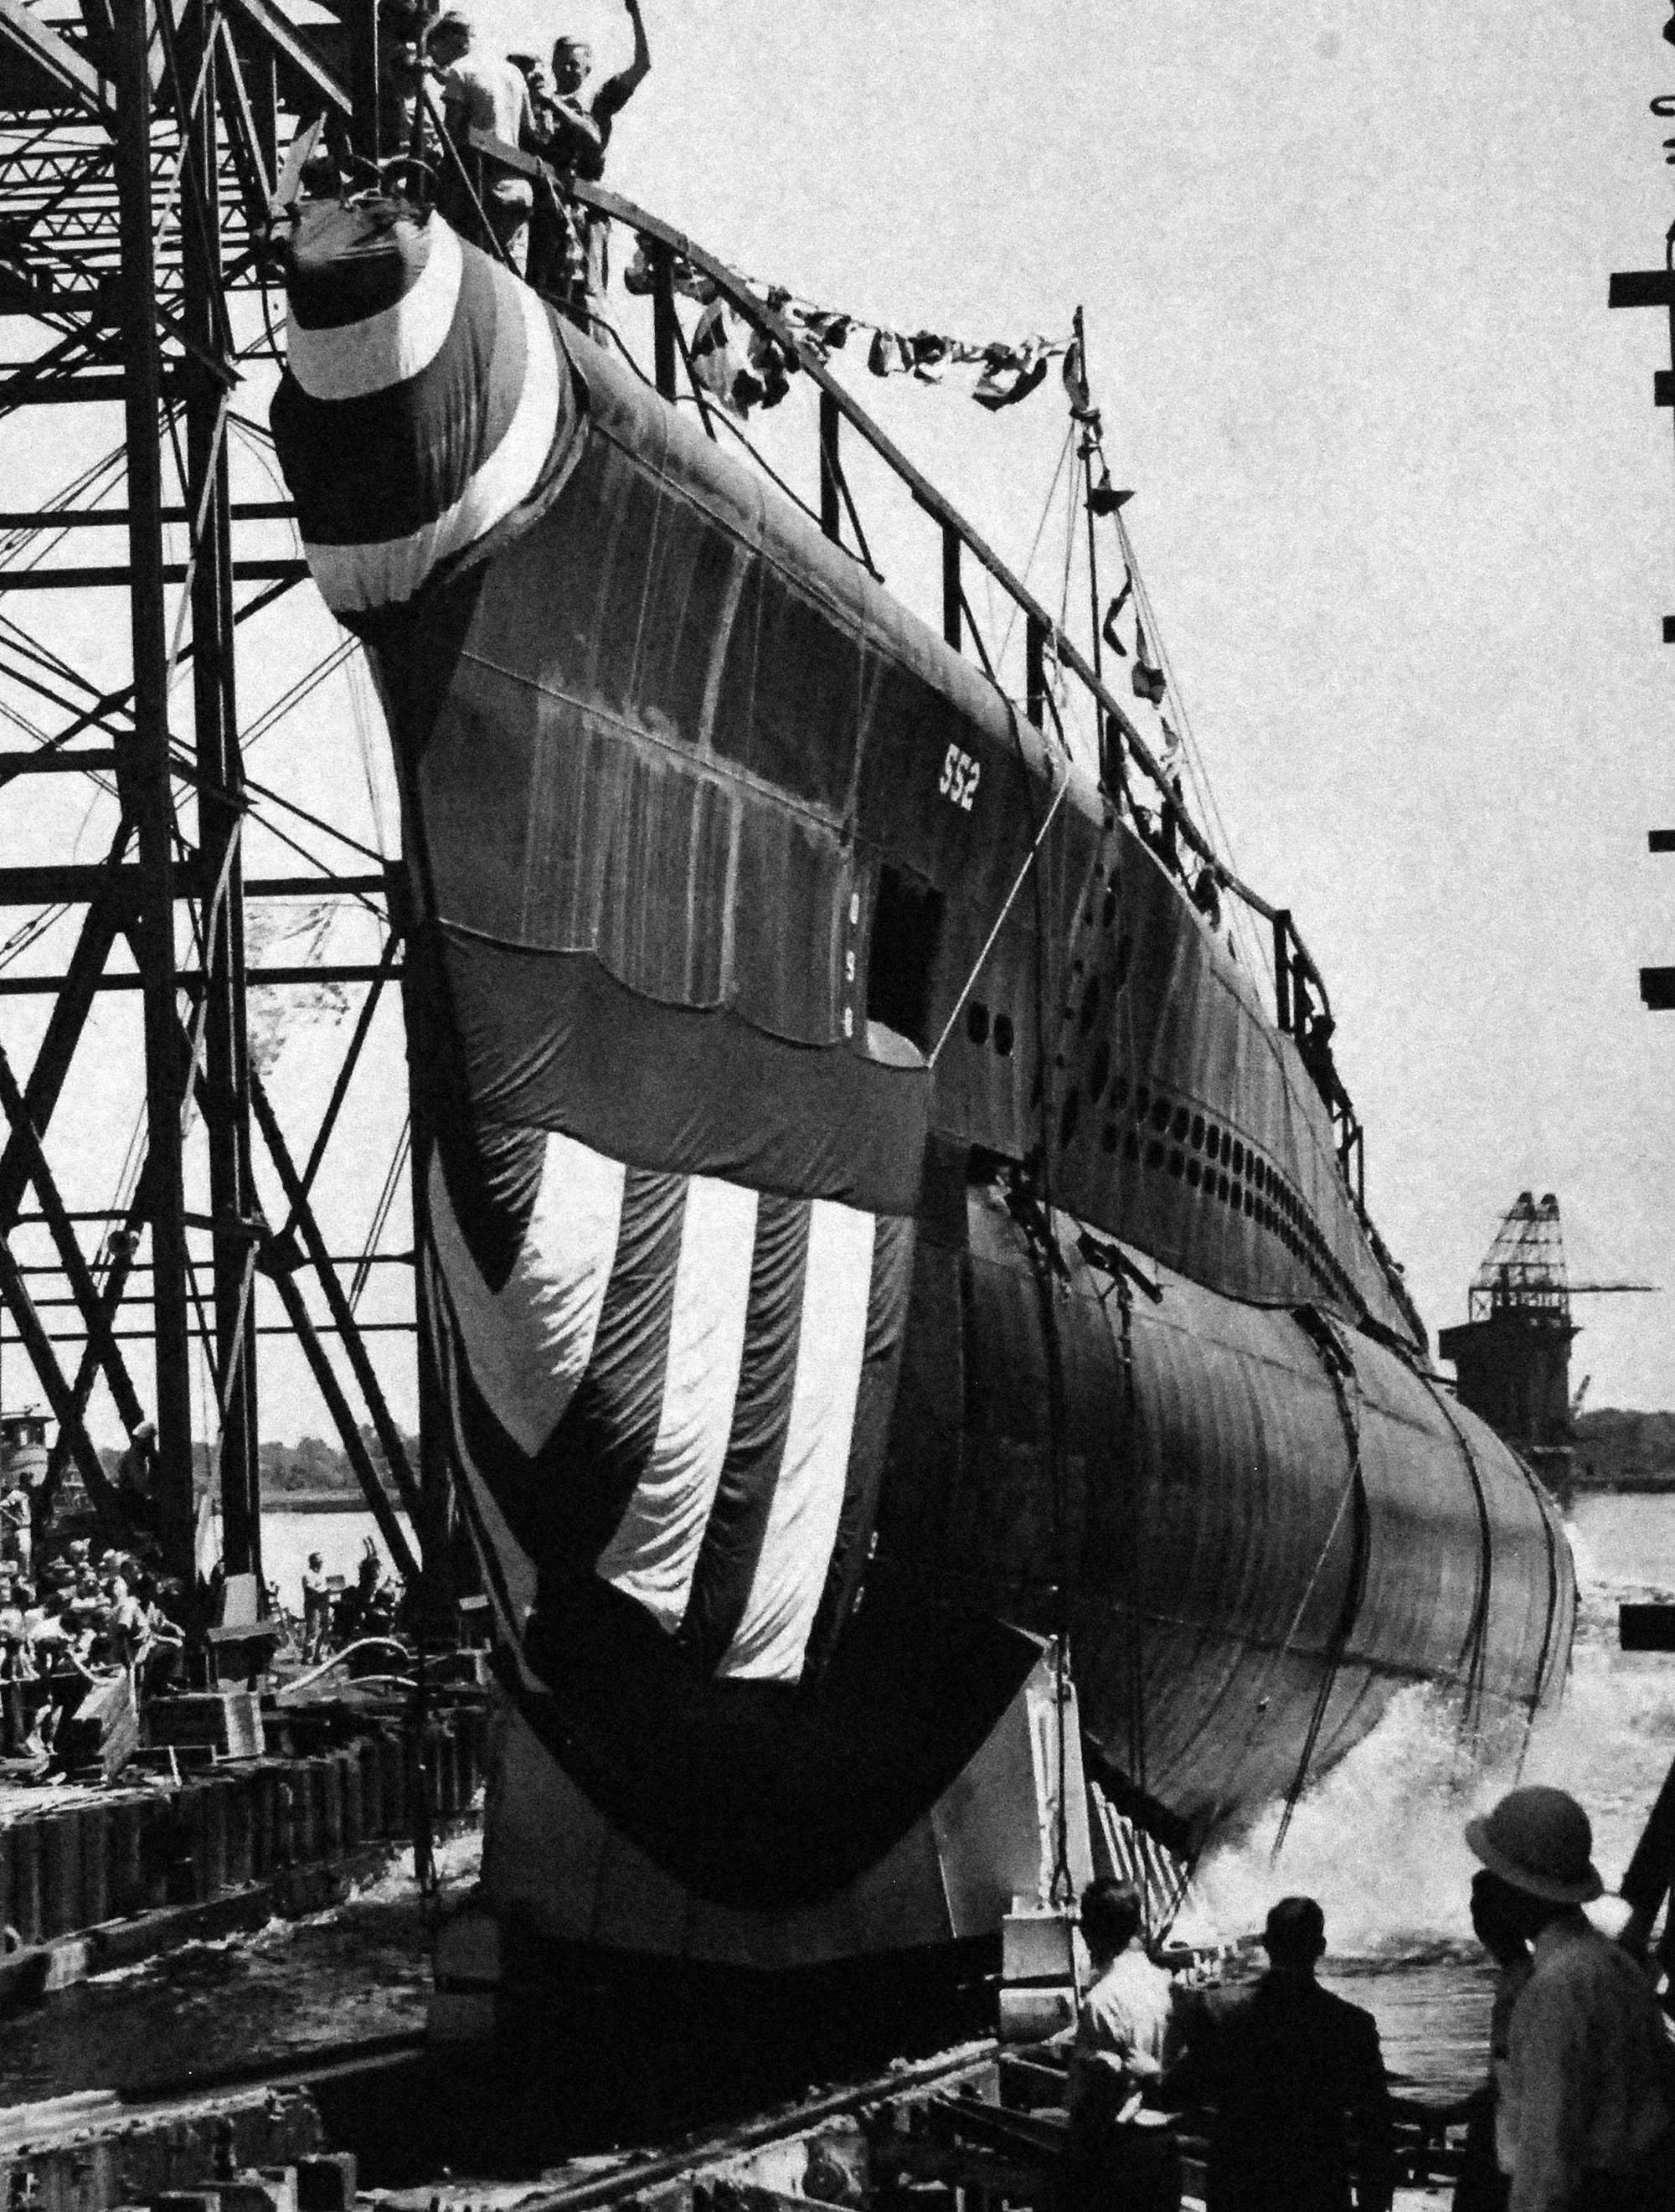 USS Ling ready to launch in 1945. The Balao-class submarine was the mainstay of the U.S. Submarine Fleet during World War 2, but only a few remain as museum ships today. National Archives.